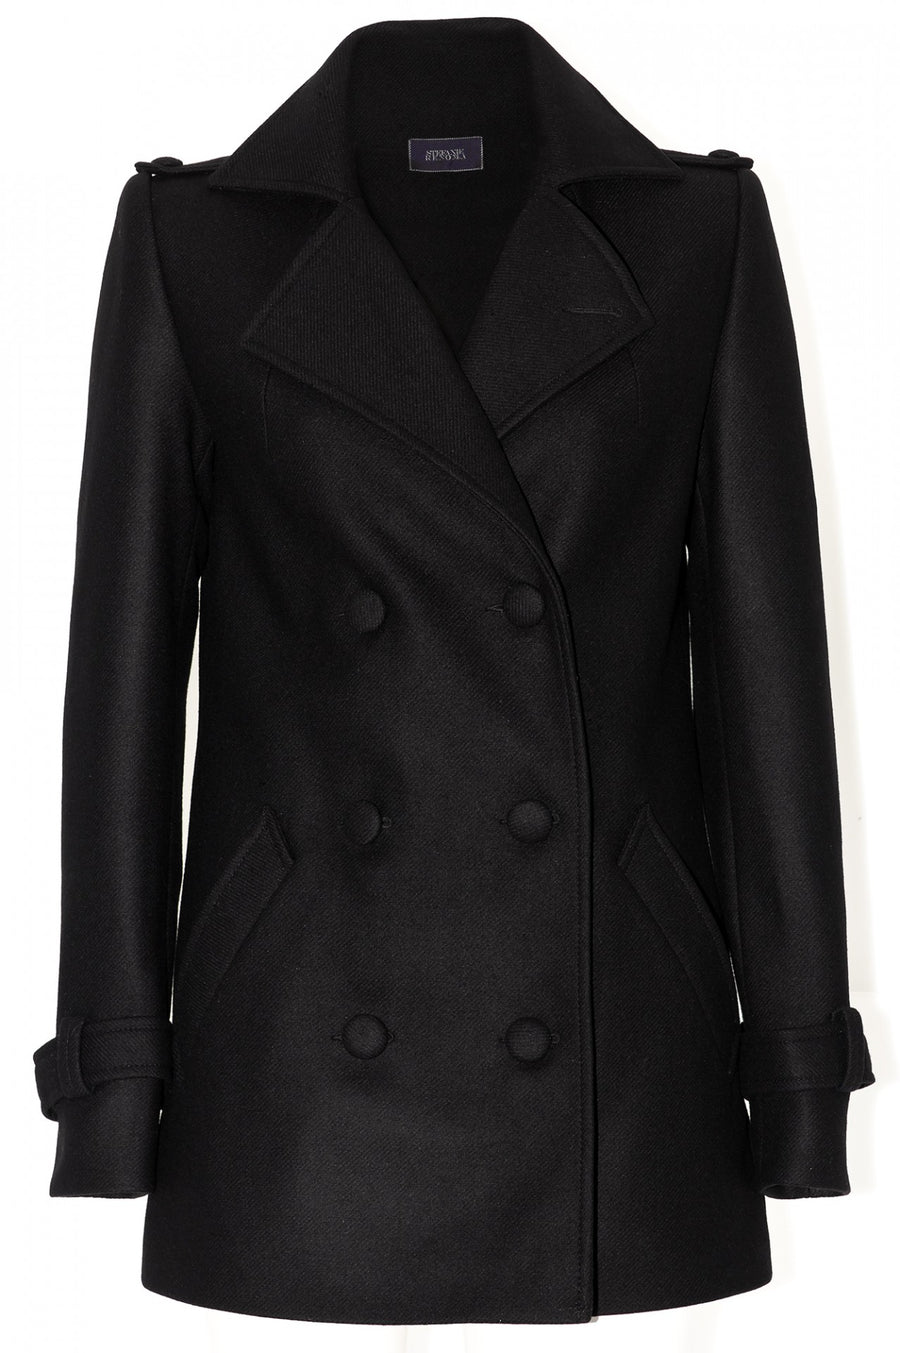 Stefanie Renoma-A WARM PEA COAT IN BLACK CASHEMERE-Silkarmour-1